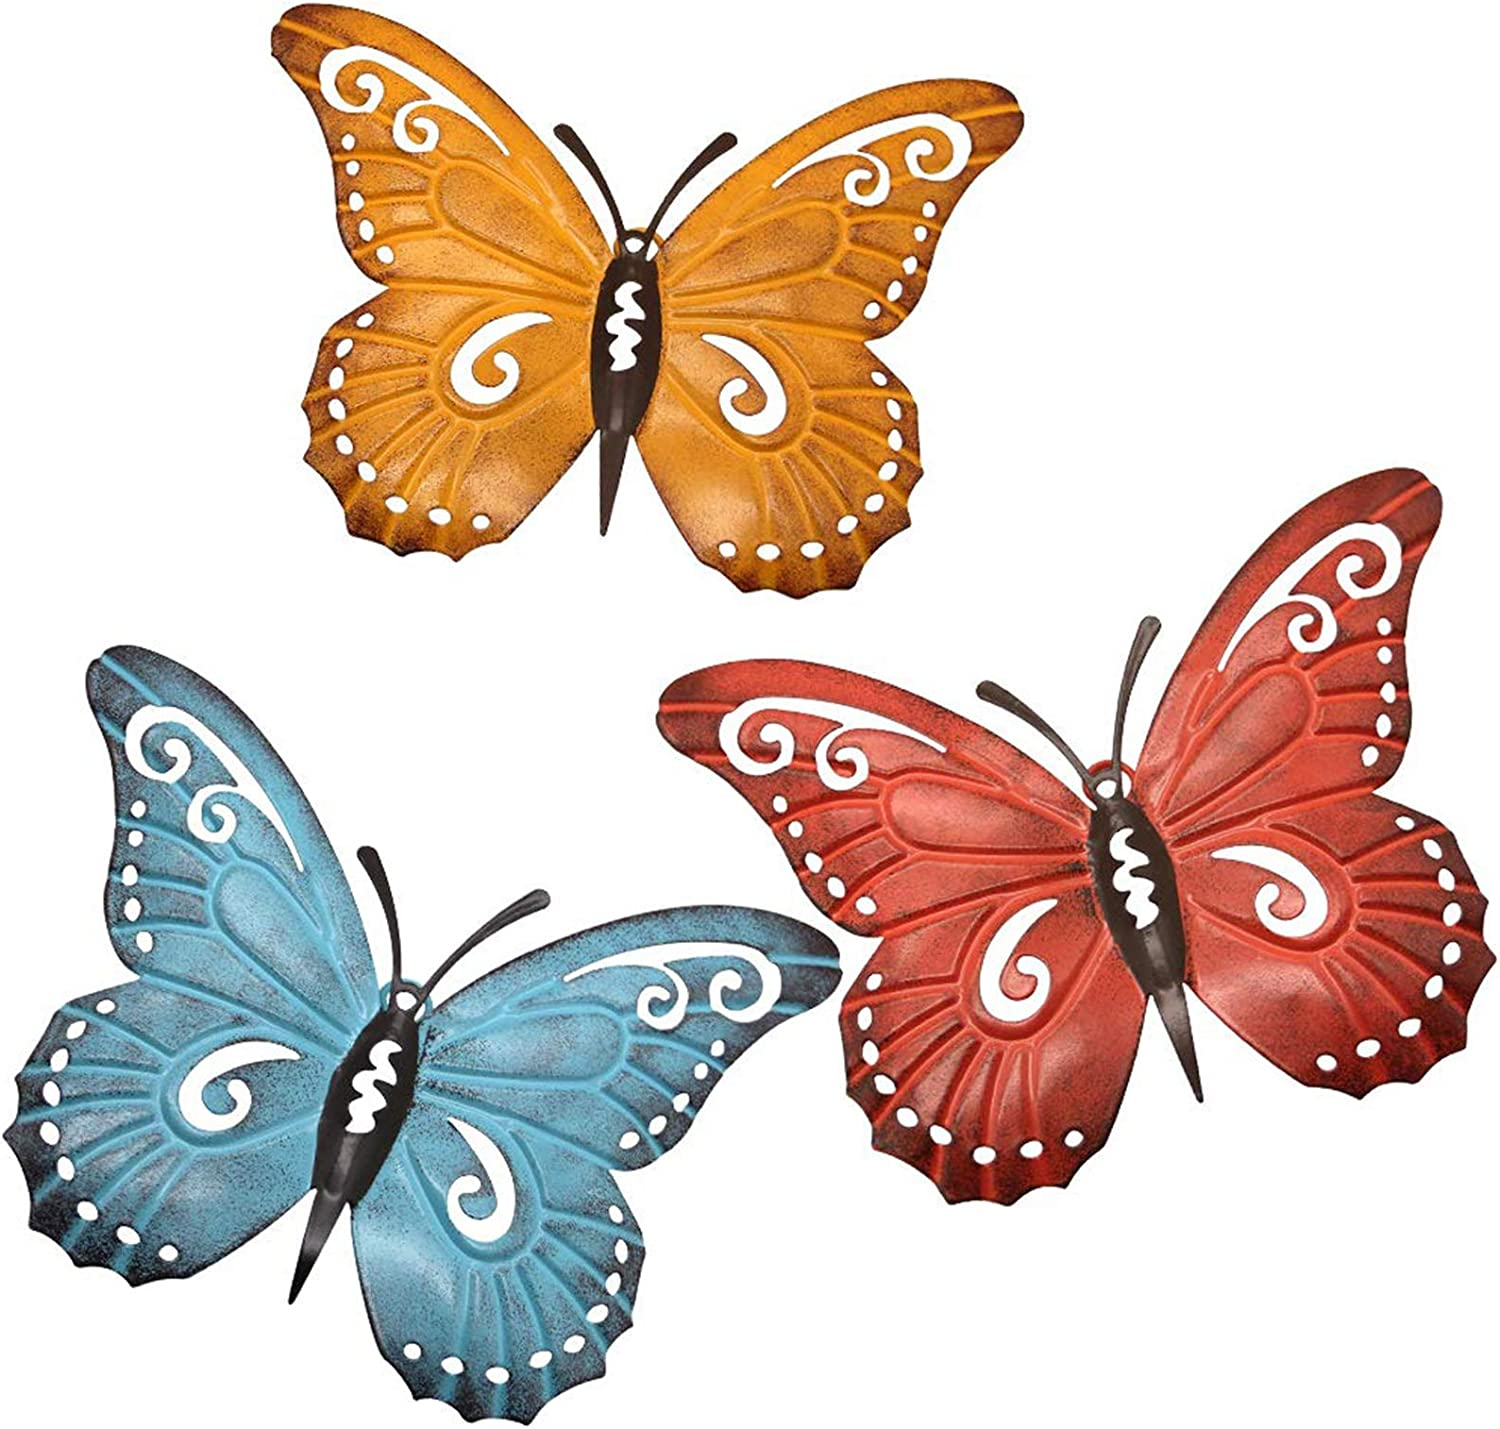 Juegoal Metal Butterfly Wall Inspirational Limited price Import sale Sculp Art Decor